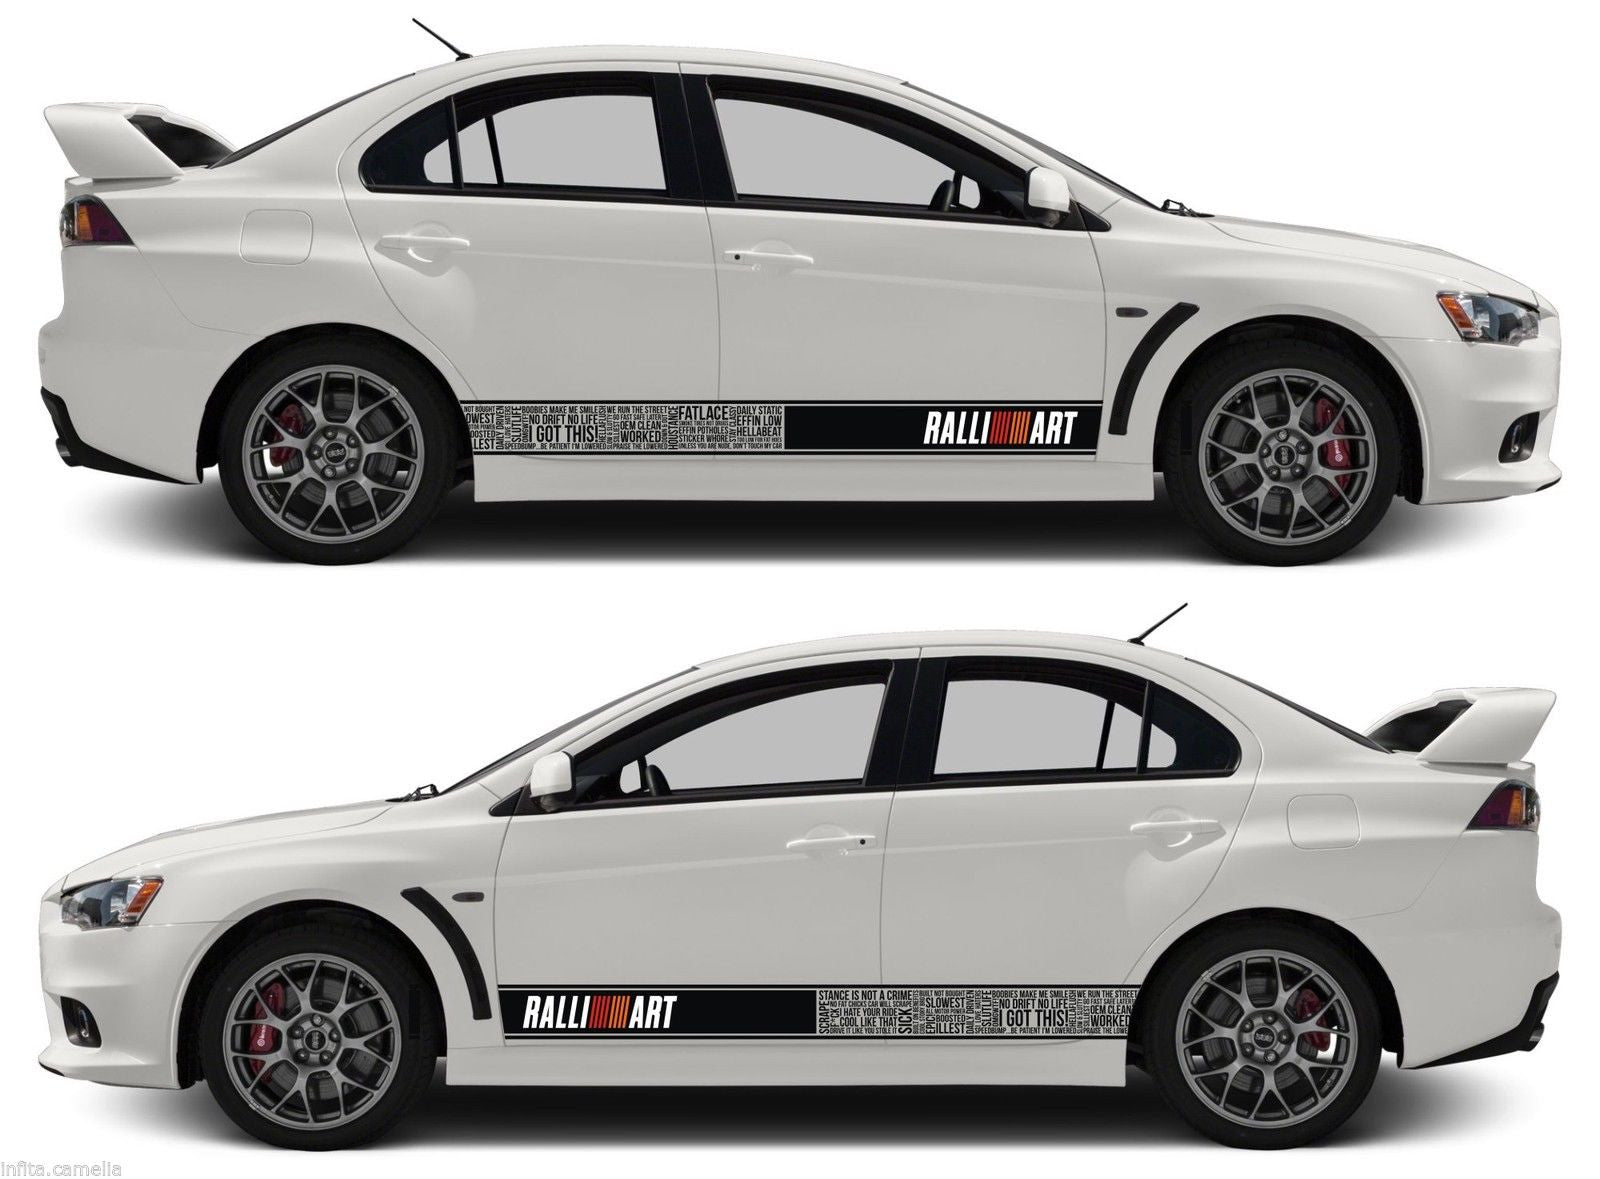 Mitsubishi bomb stripes sticker ralliart mivec lancer evolution outlander evo jdm japan infinity270 1